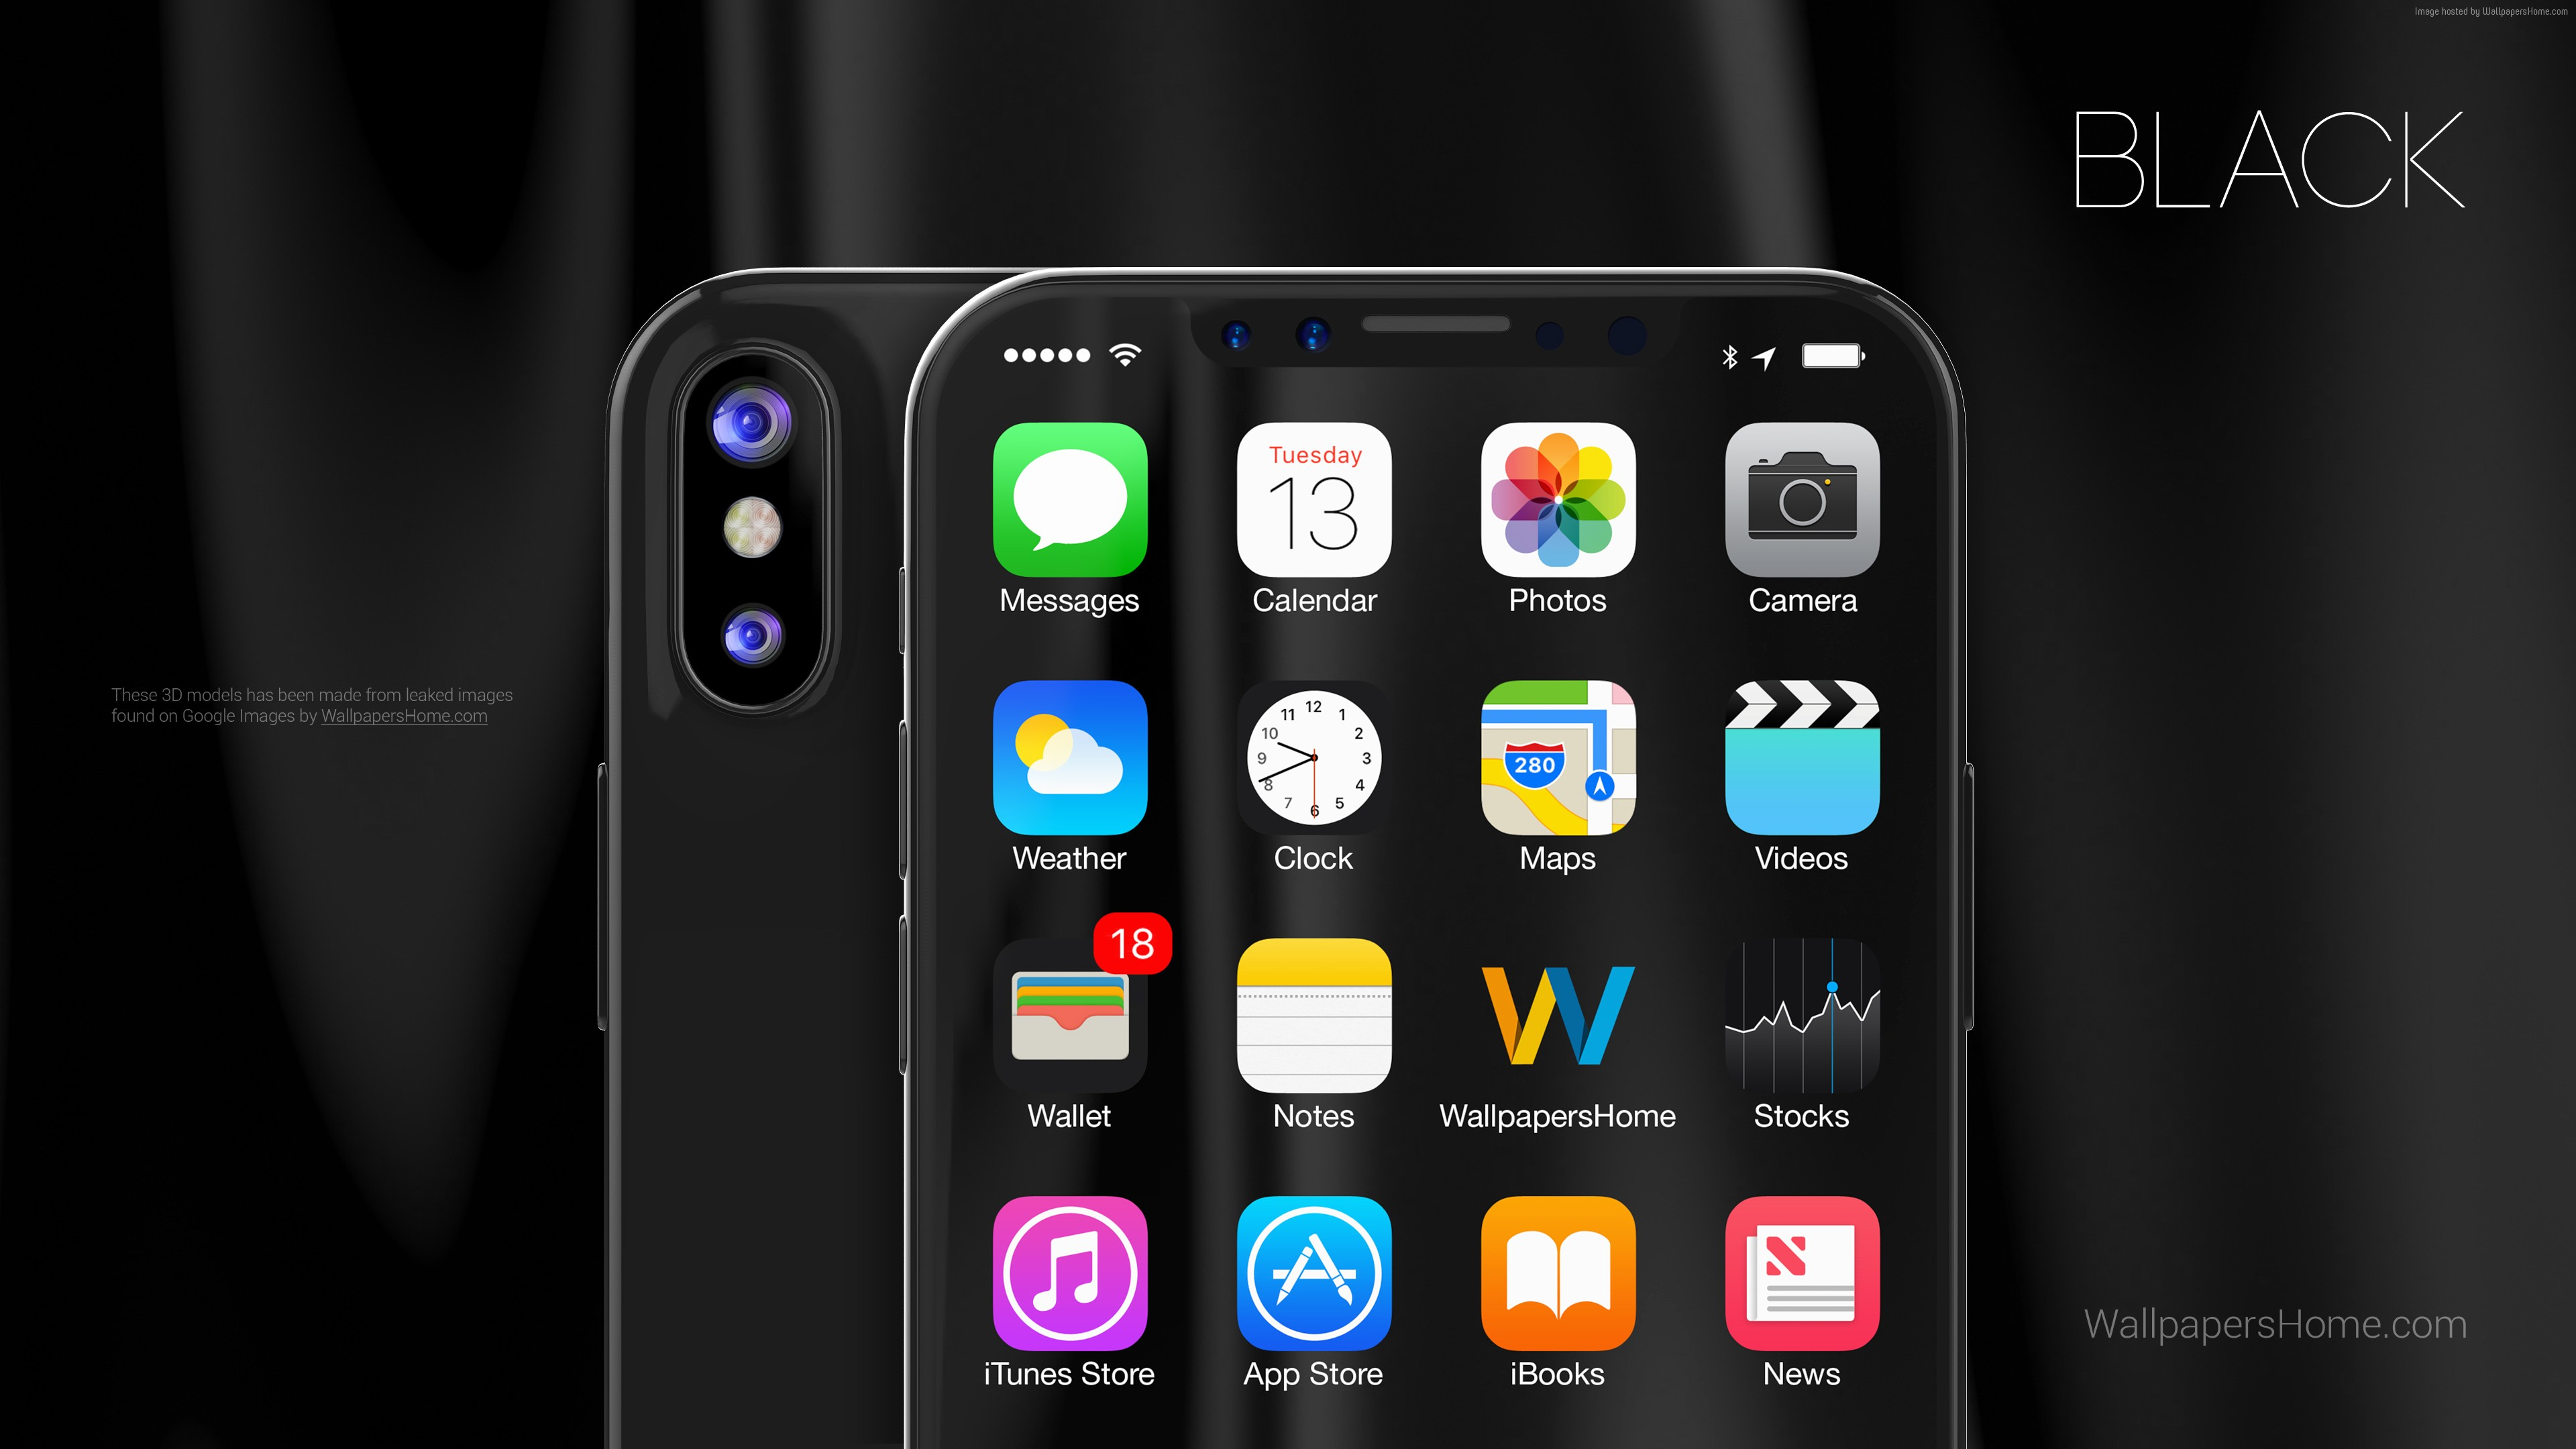 Wallpaper IPhone X Black 3D Leaked WWDC 2017 4k Hi